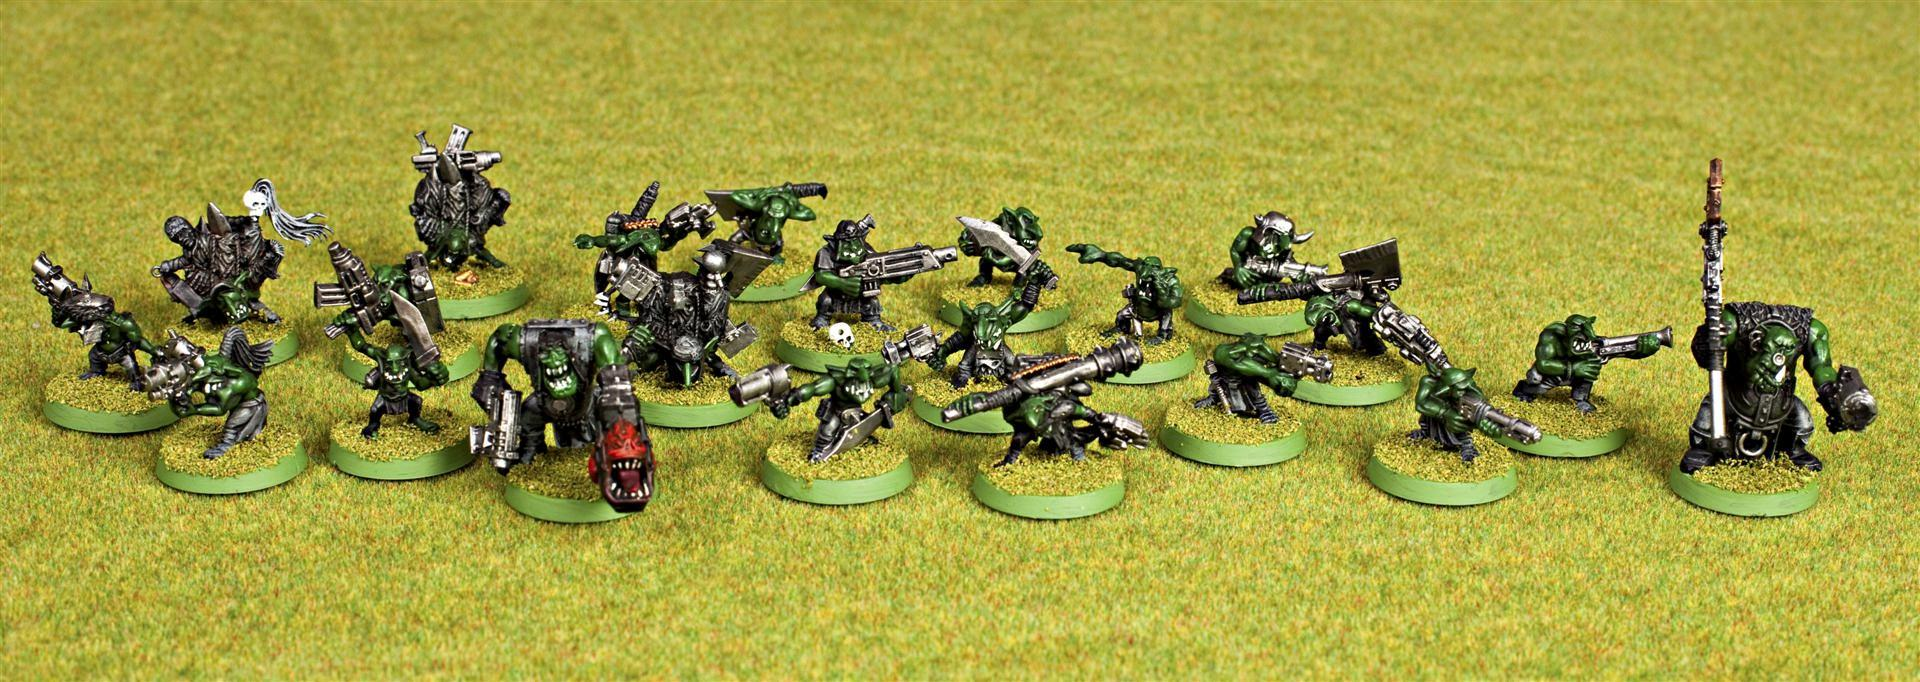 Gretchin Mob, Orks, Runtherford